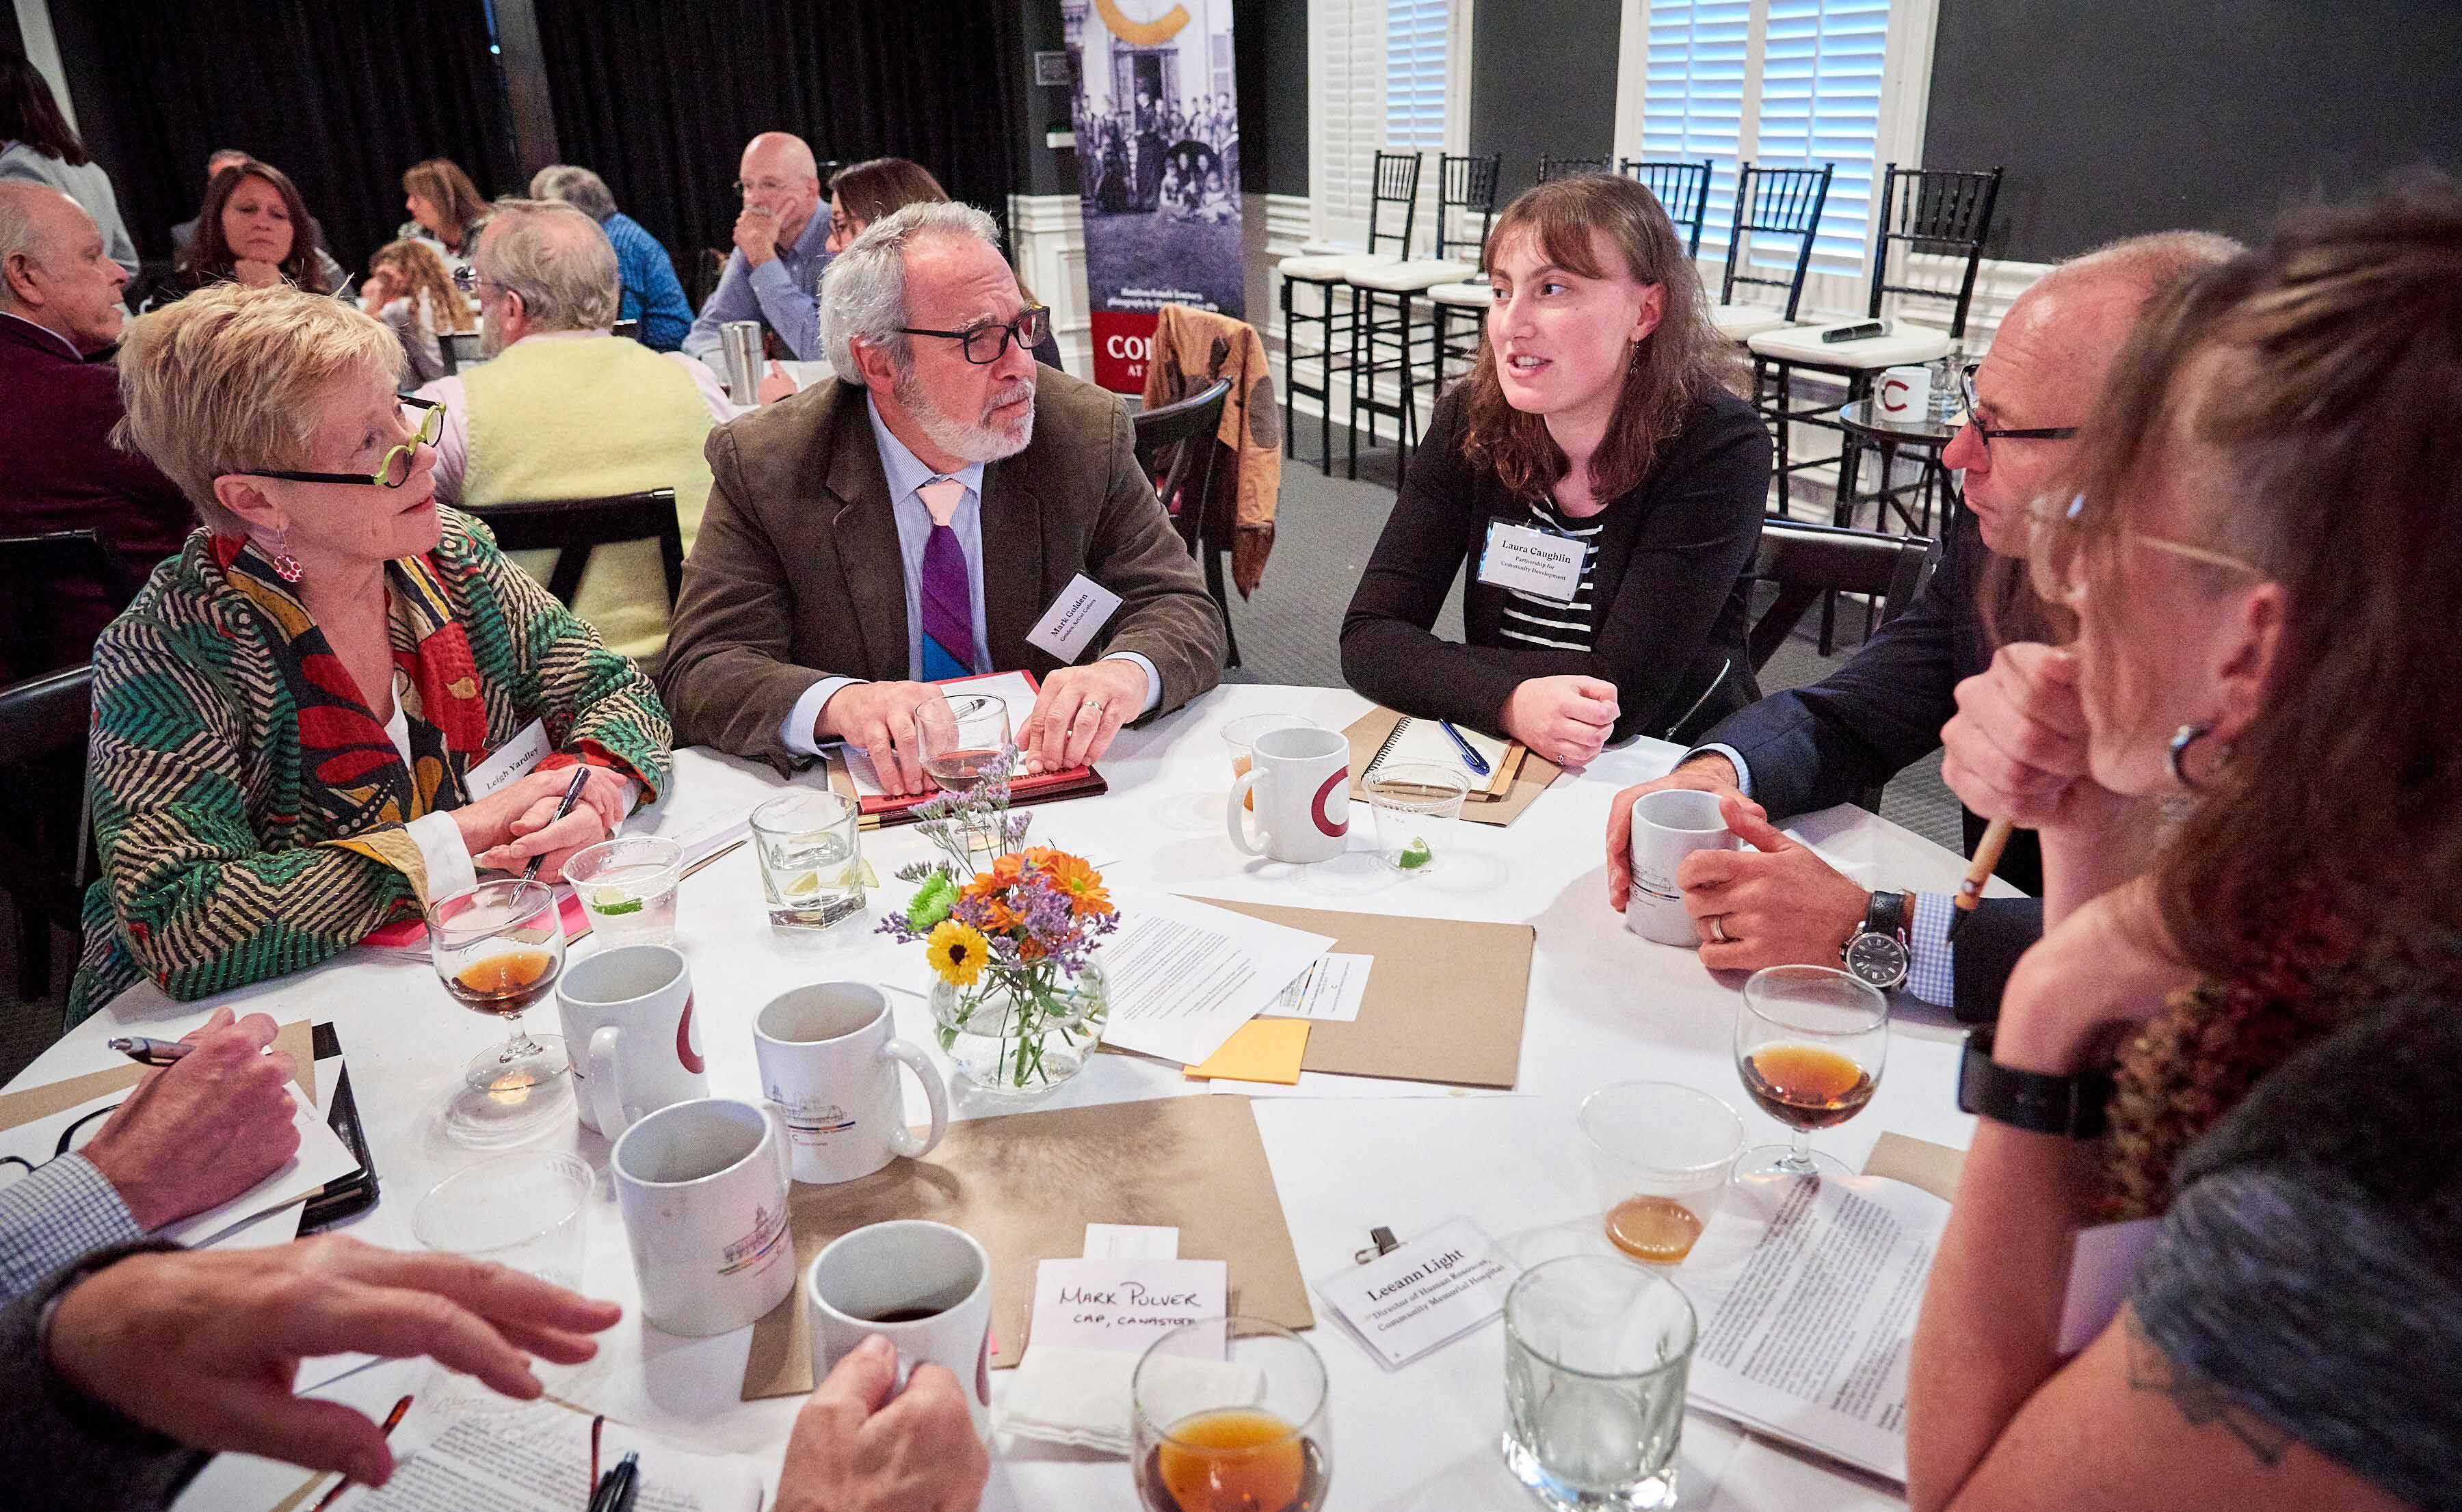 Participants at the 4C conference discuss economic development ideas on Oct. 25.